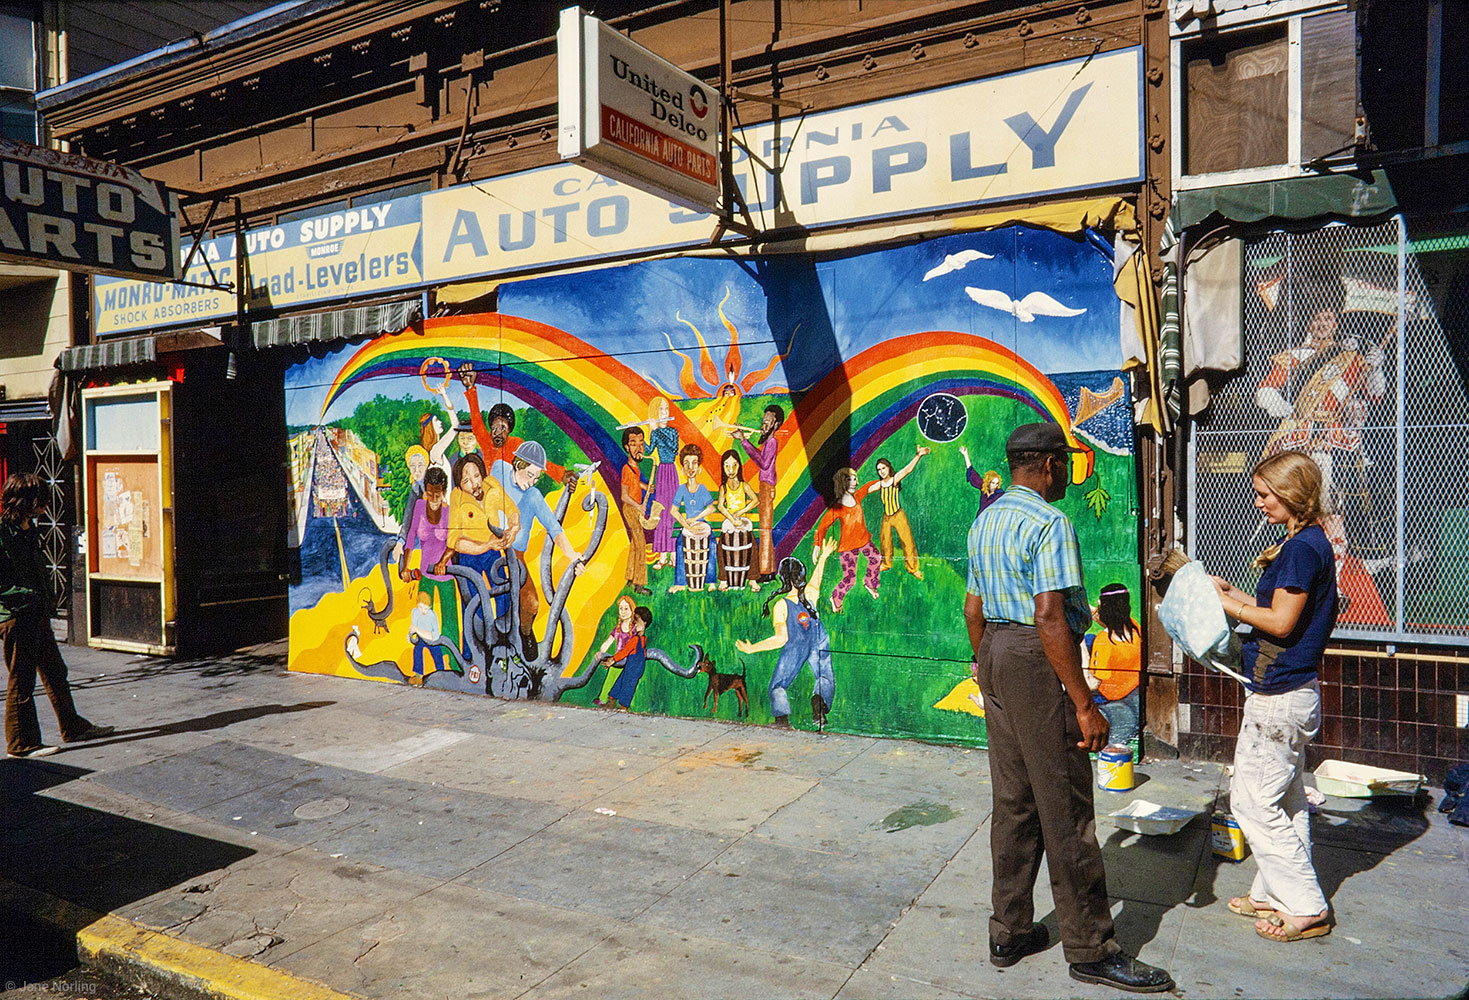 Rainbow Song , Auto Parts storefront, Haight St, San Francisco, California. Haight Ashbury Muralists, 1972. First mural of Haight Ashbury Muralists anti-imperialist group Miranda Bergman, Jane Norling, Arch Williams, with community painters. Destroyed.